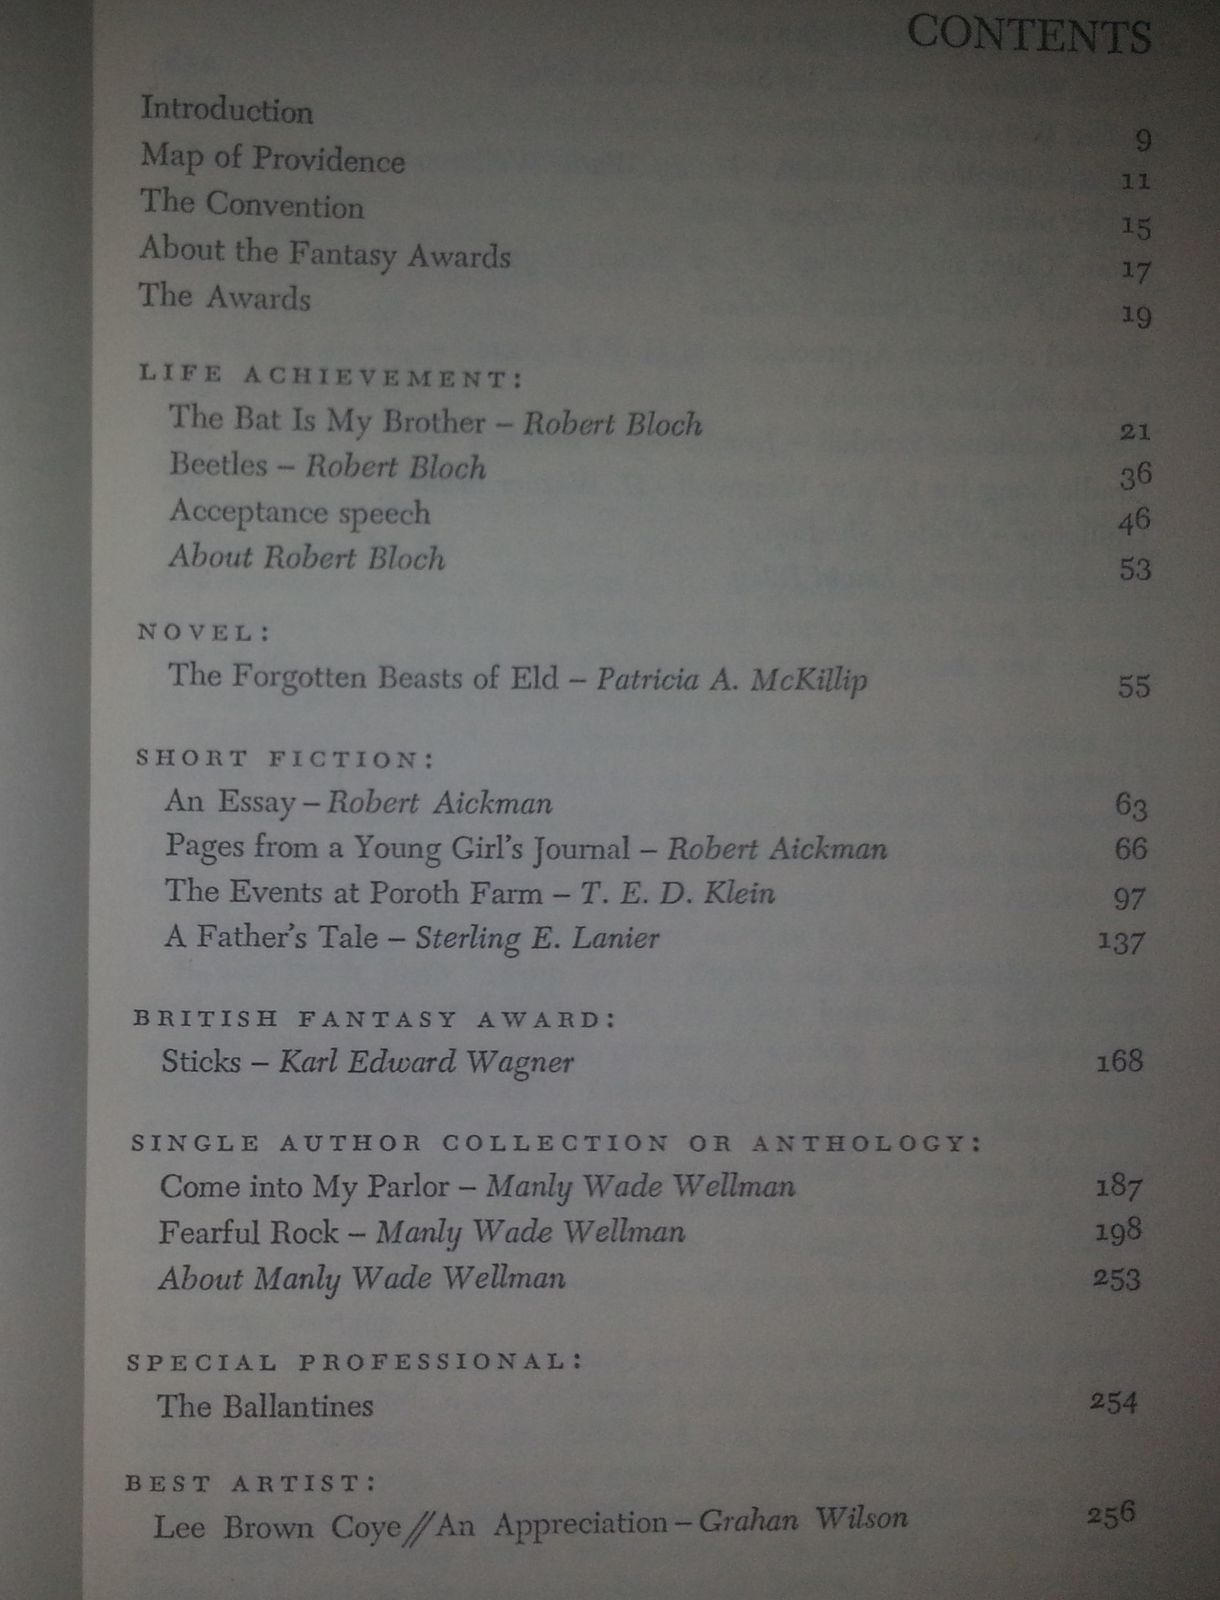 First World Fantasy Awards Edited by Gahan Wilson 1977 HBDJ